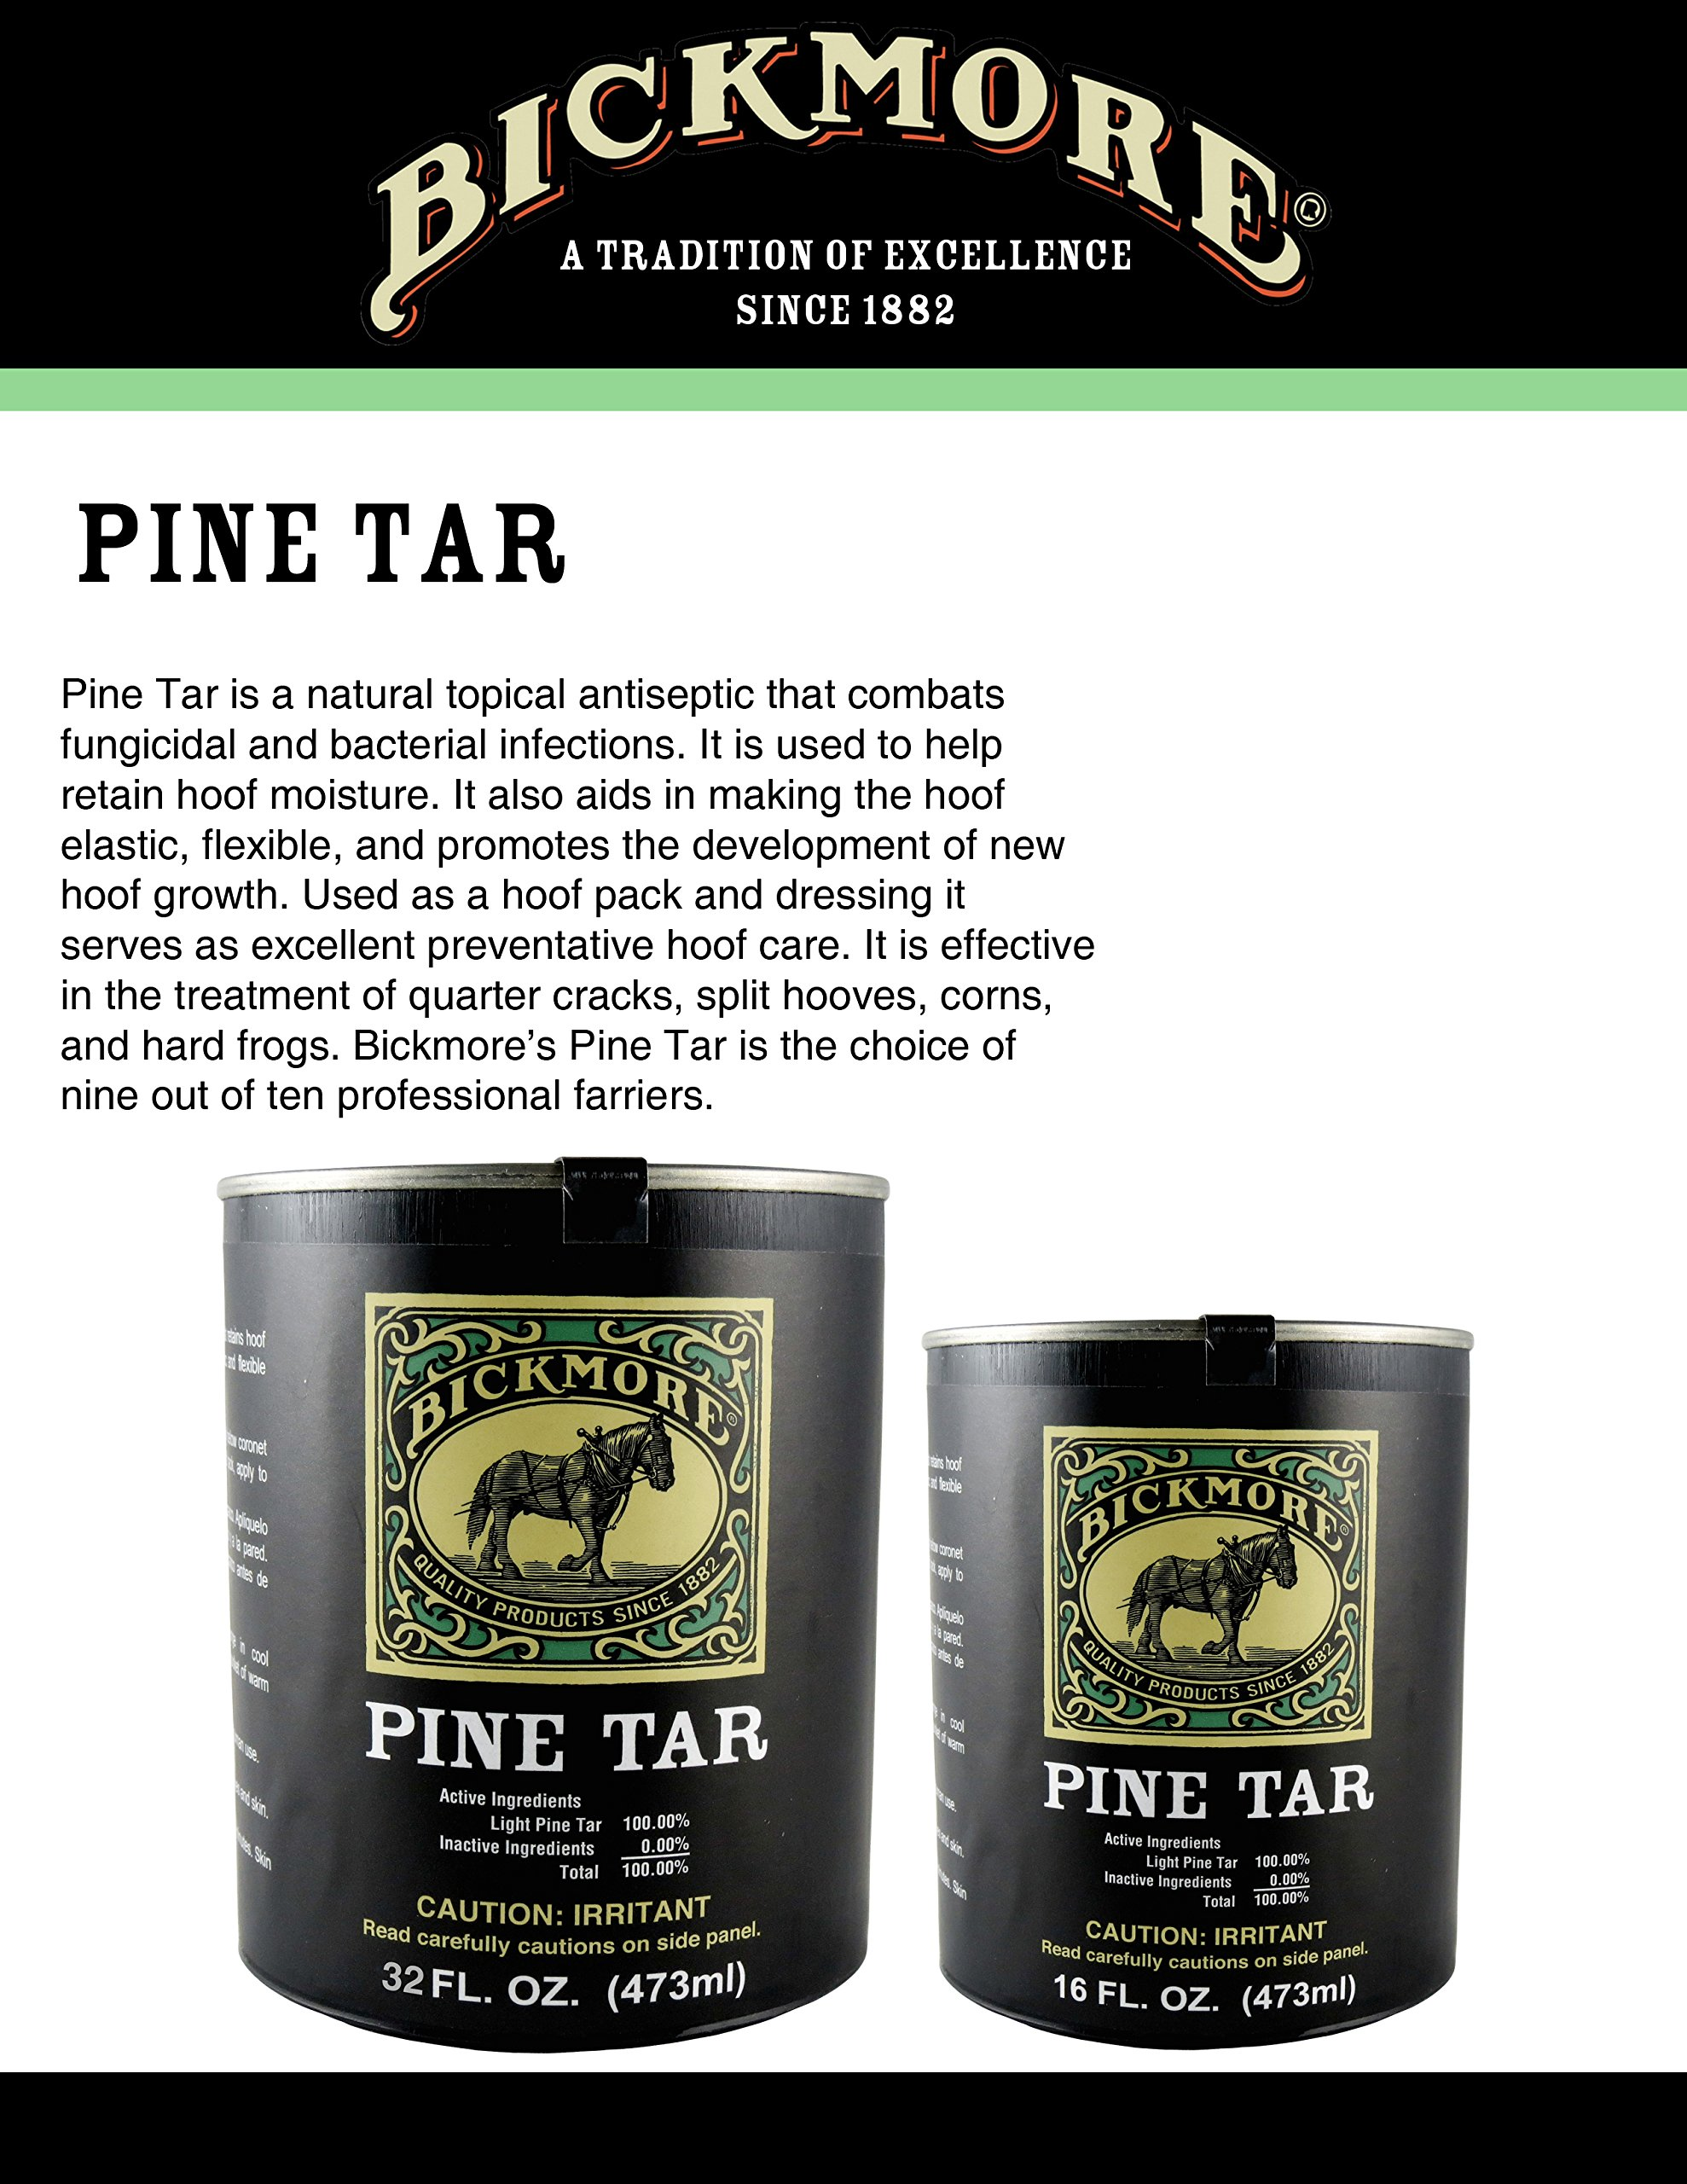 Bickmore Pine Tar 16oz - Hoof Care Formula For Horses by Bickmore (Image #3)